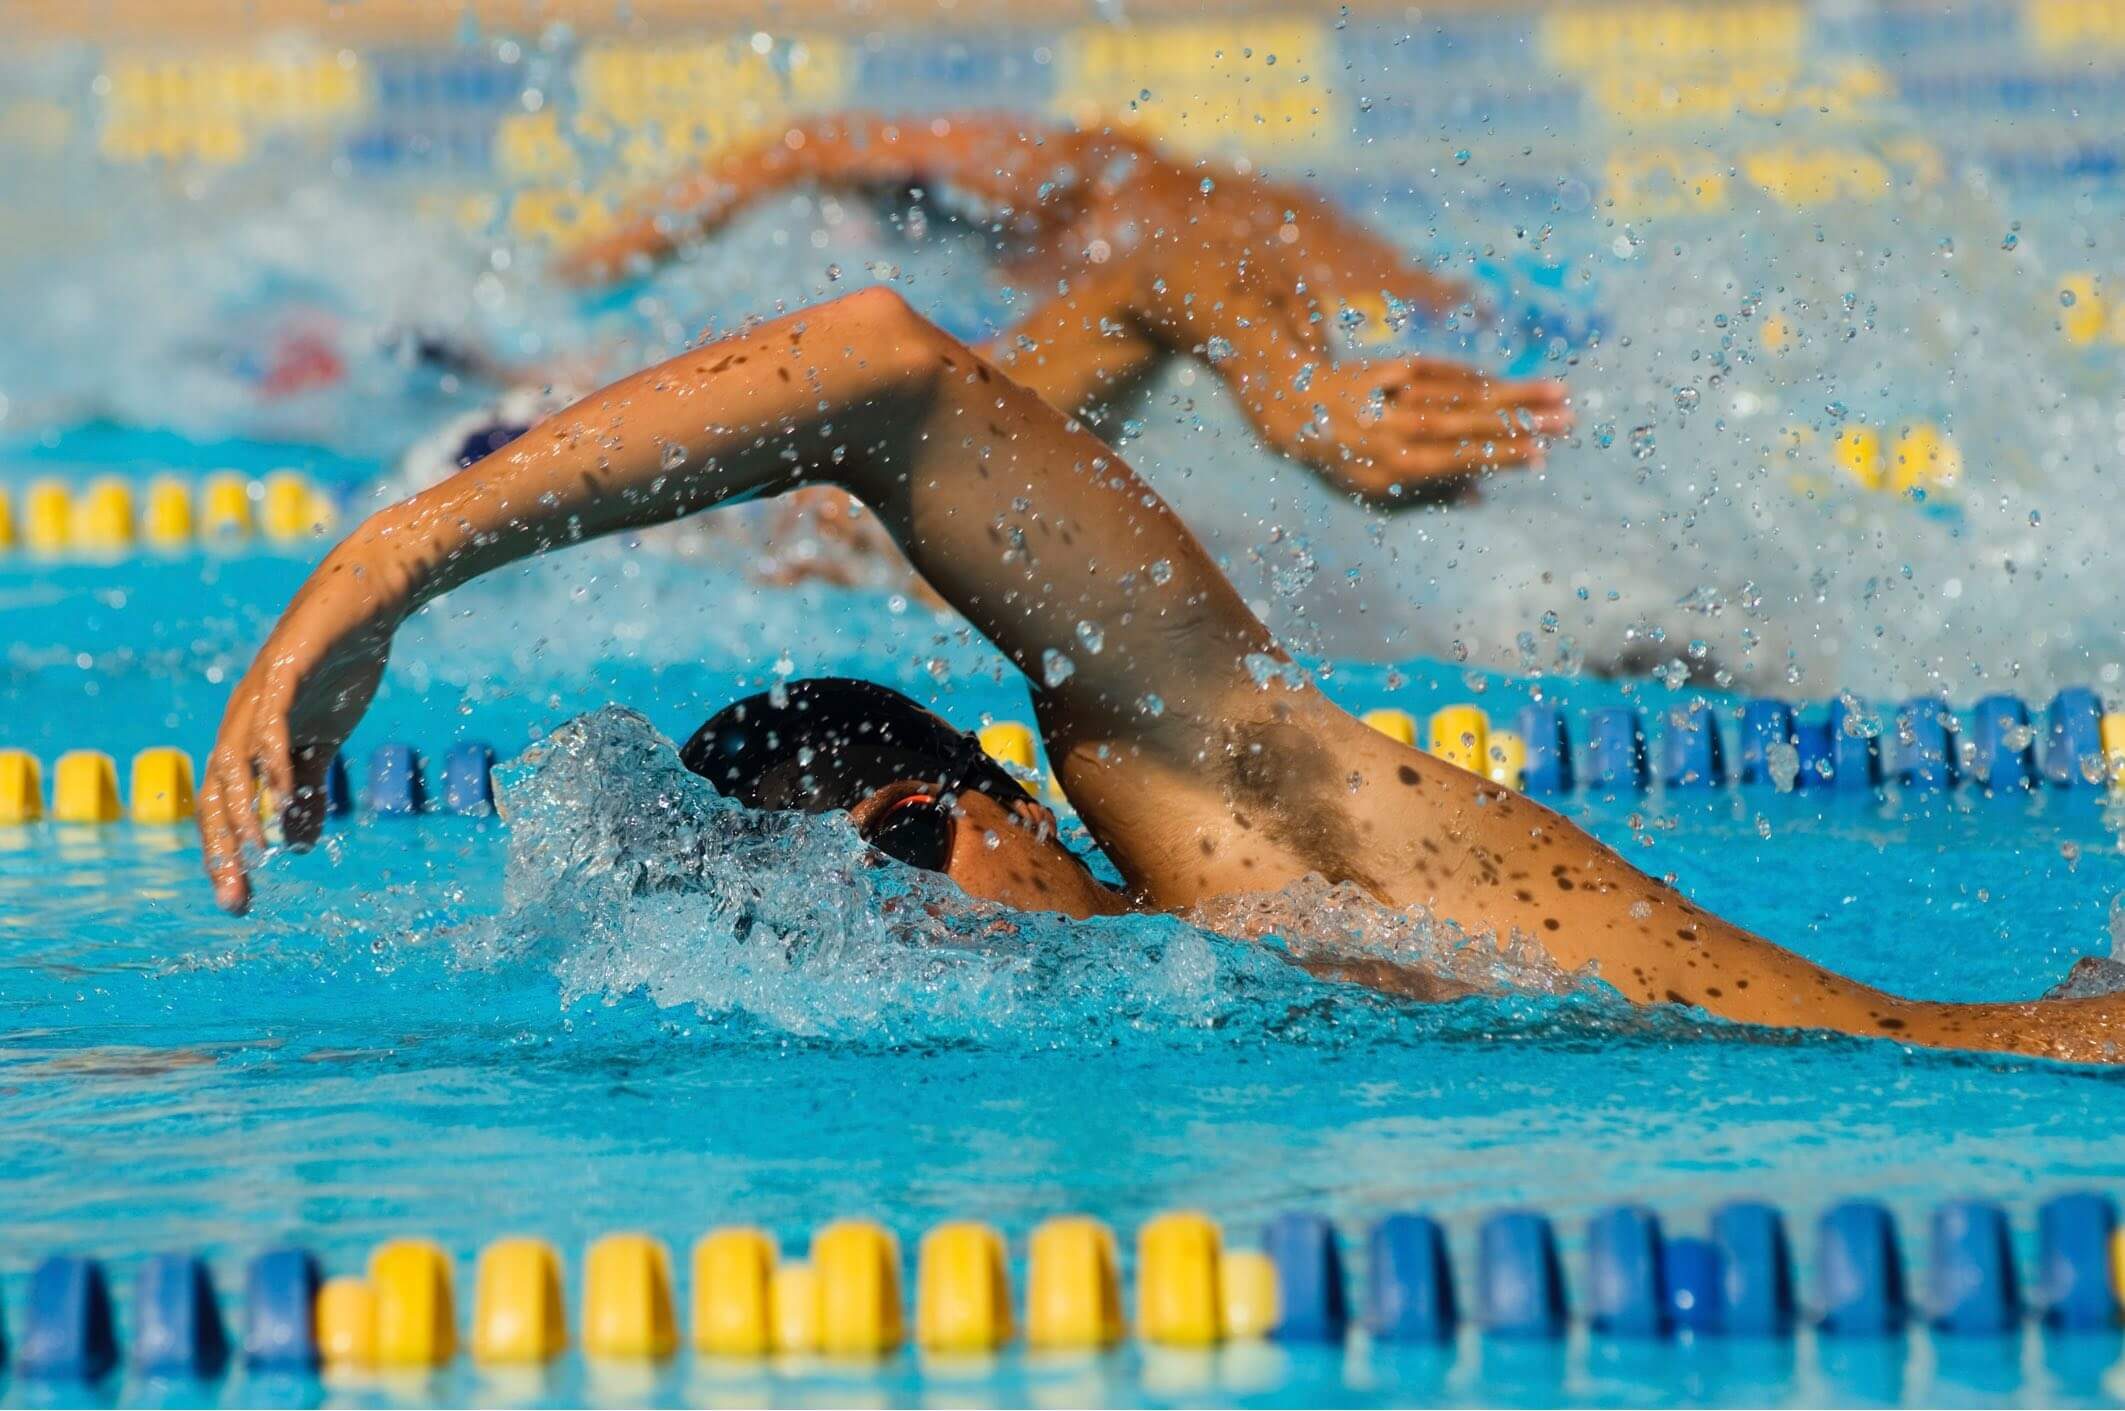 swimming as a sport and learning mechanism in my life (sport,dance,martialartetc) swimming instructor 4 mechanism able to practice basic swimming stroke independently life long learning.